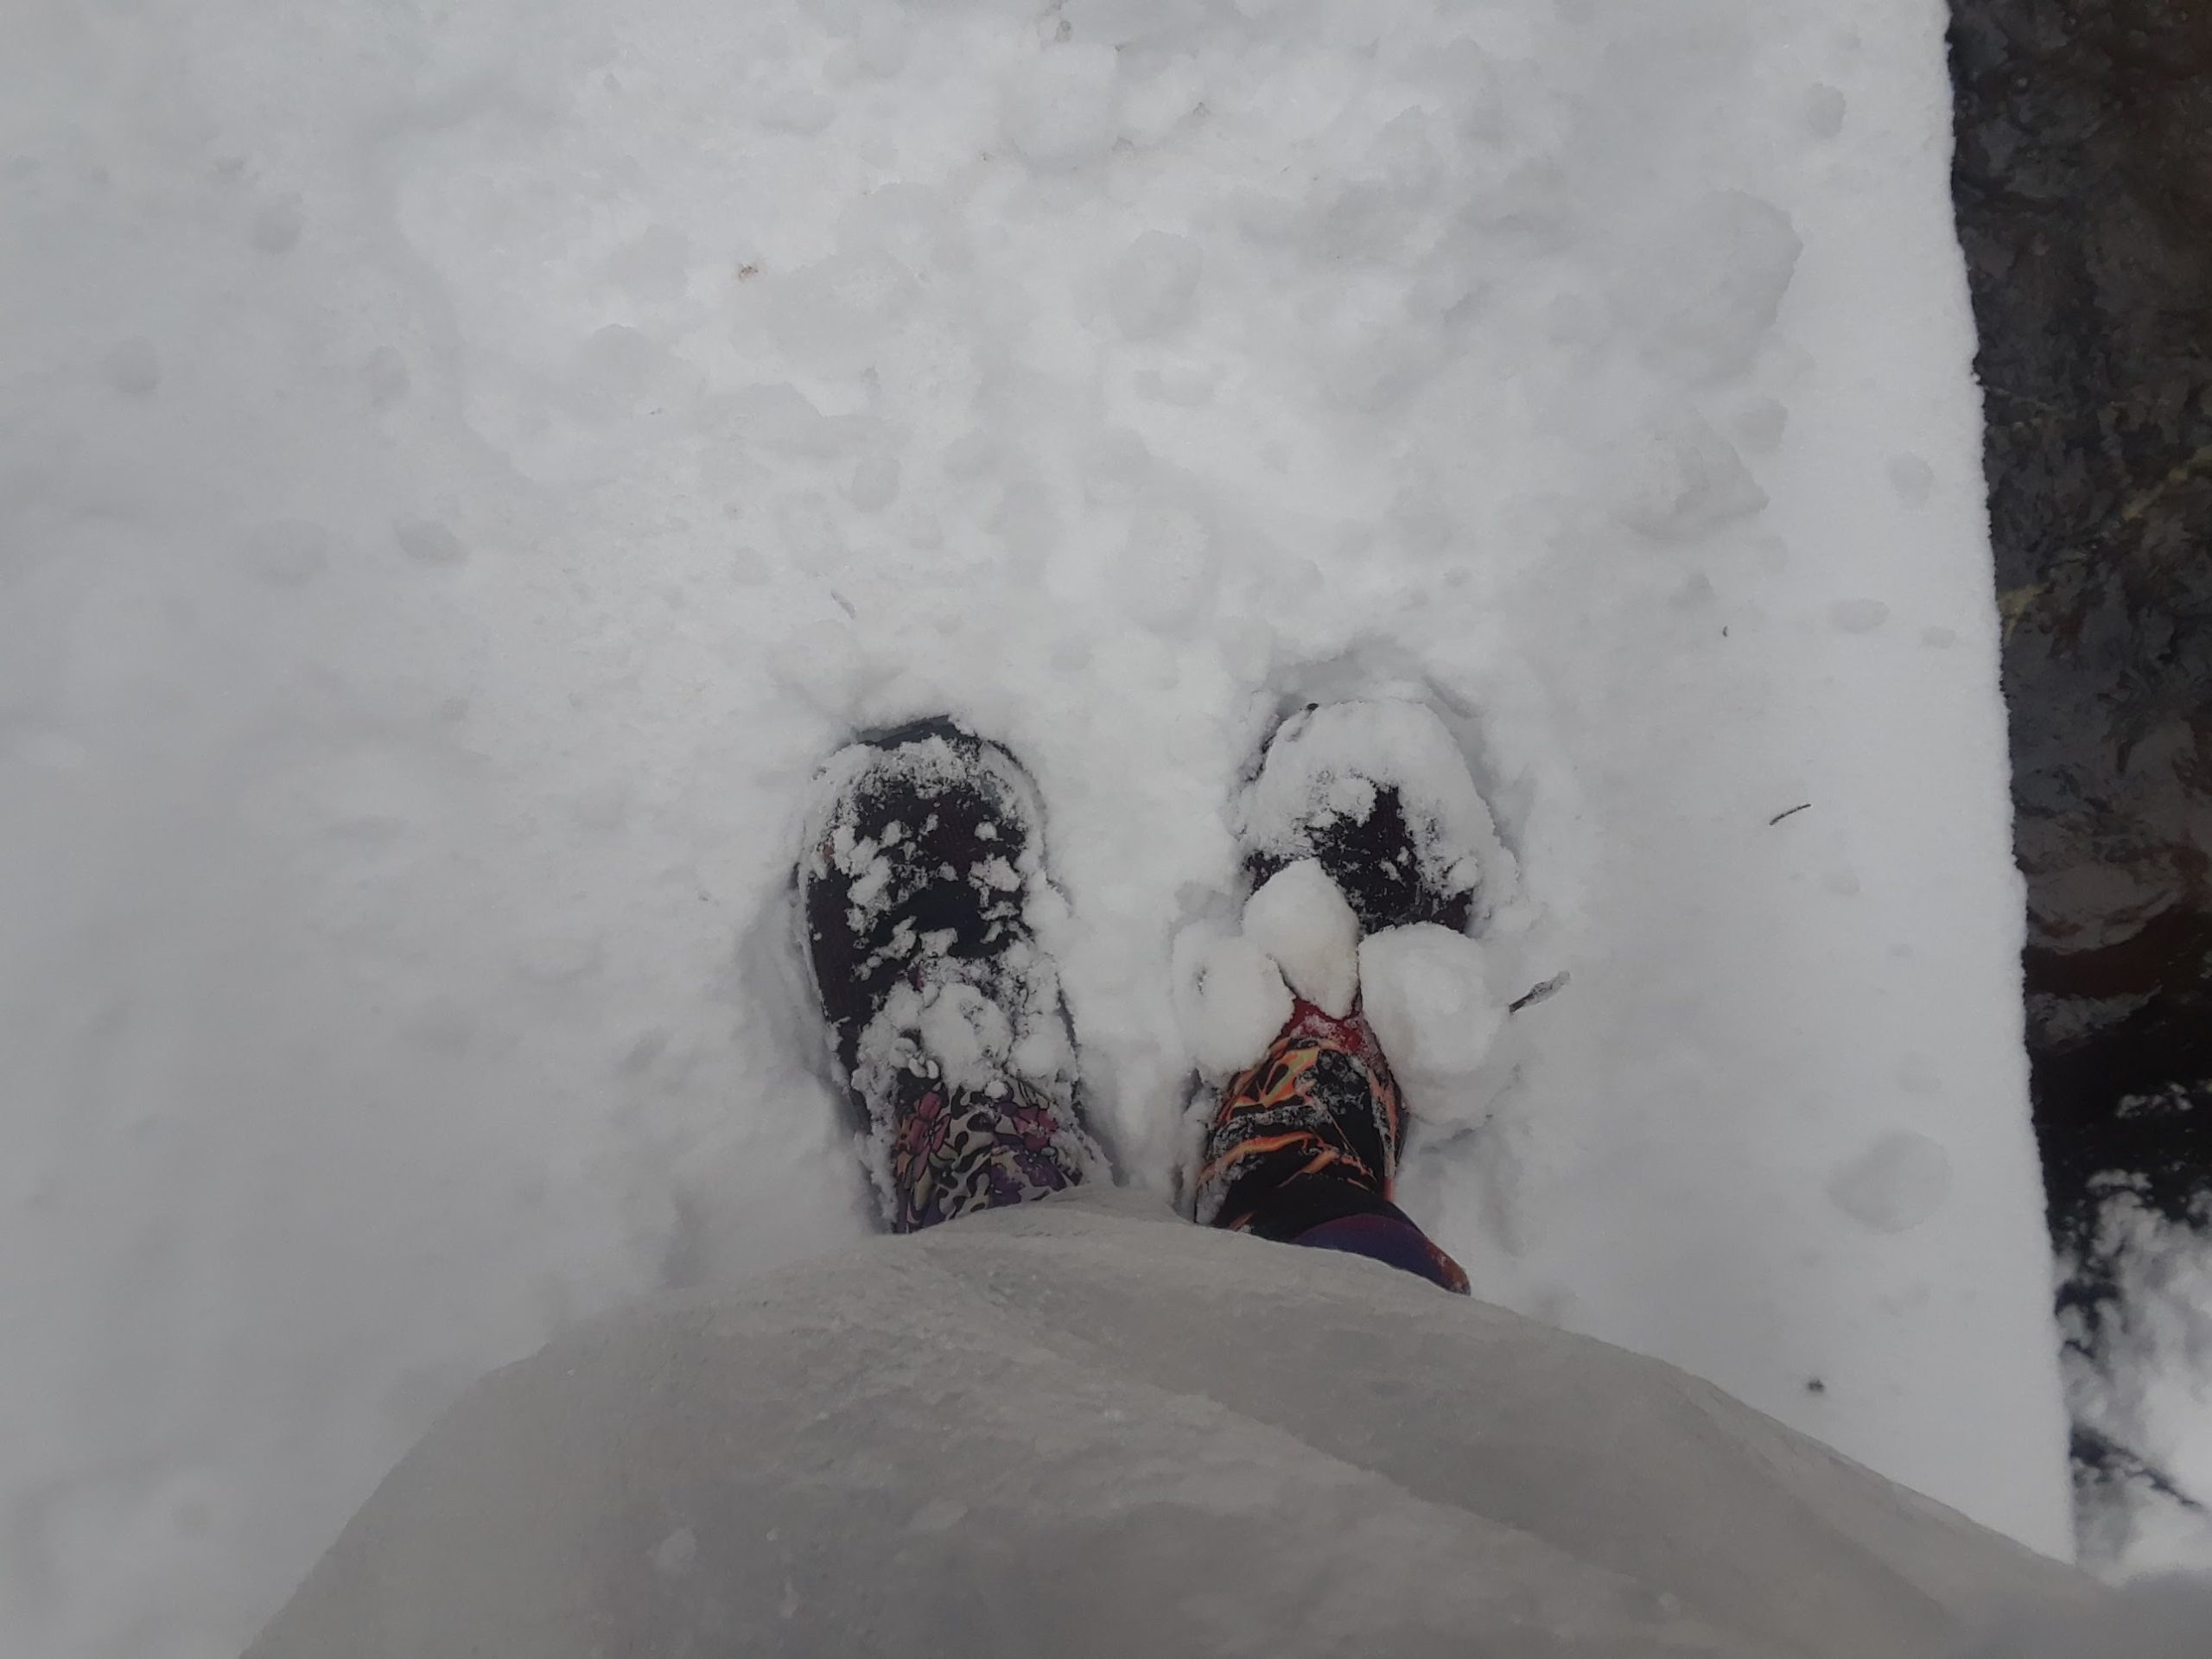 appalachian trail winter thru-hike